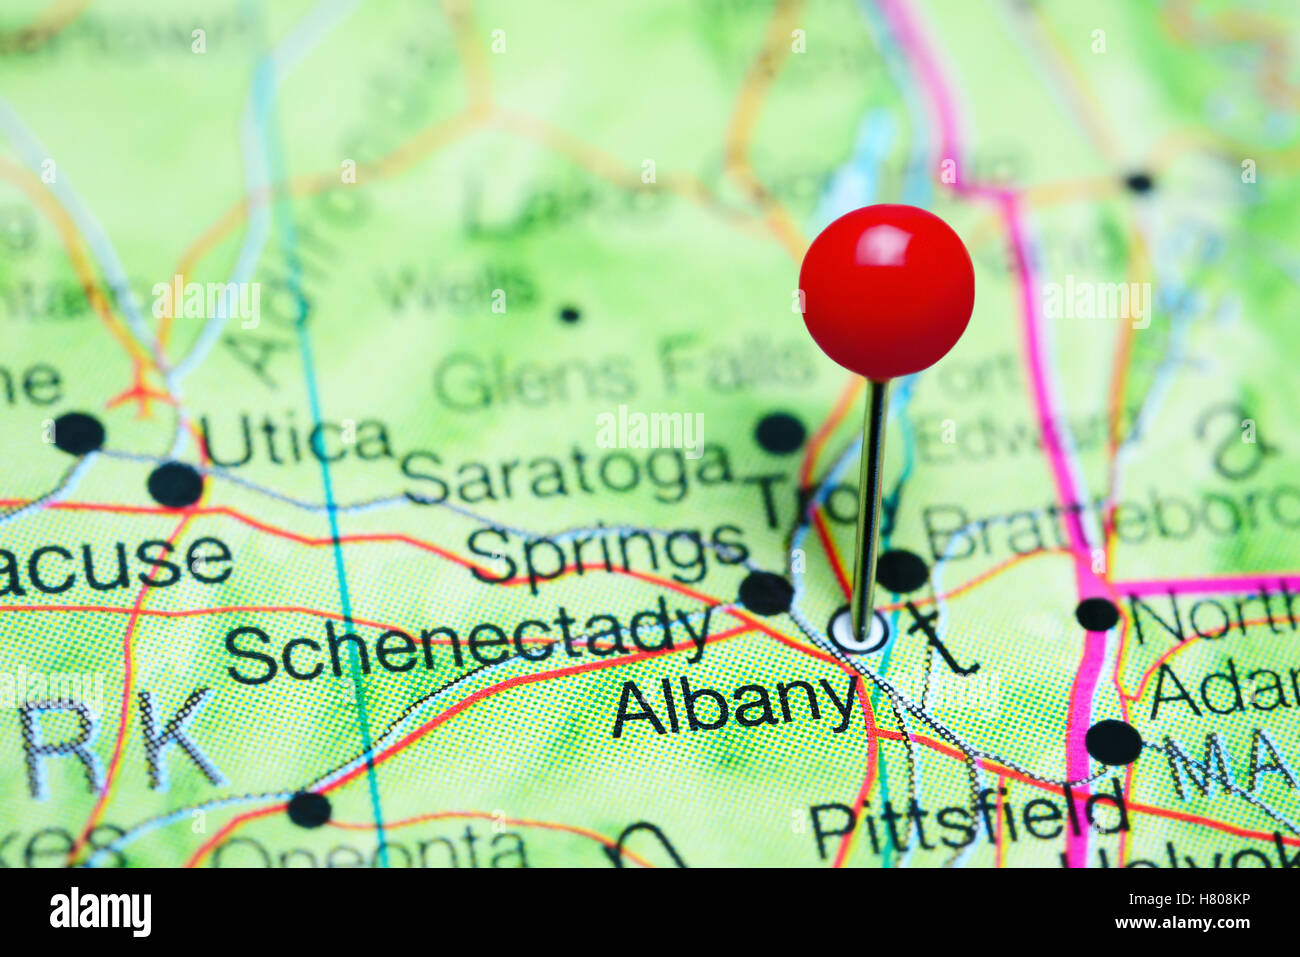 Albany pinned on a map of New York state, USA Stock Photo: 125396650 on religion map of usa, guam map of usa, jamaica map of usa, rhode island, washington dc map of usa, new york city, new jersey, north carolina, united states of america, las vegas map of usa, los angeles, new england map of usa, hudson river map of usa, statue of liberty, niagara falls map of usa,